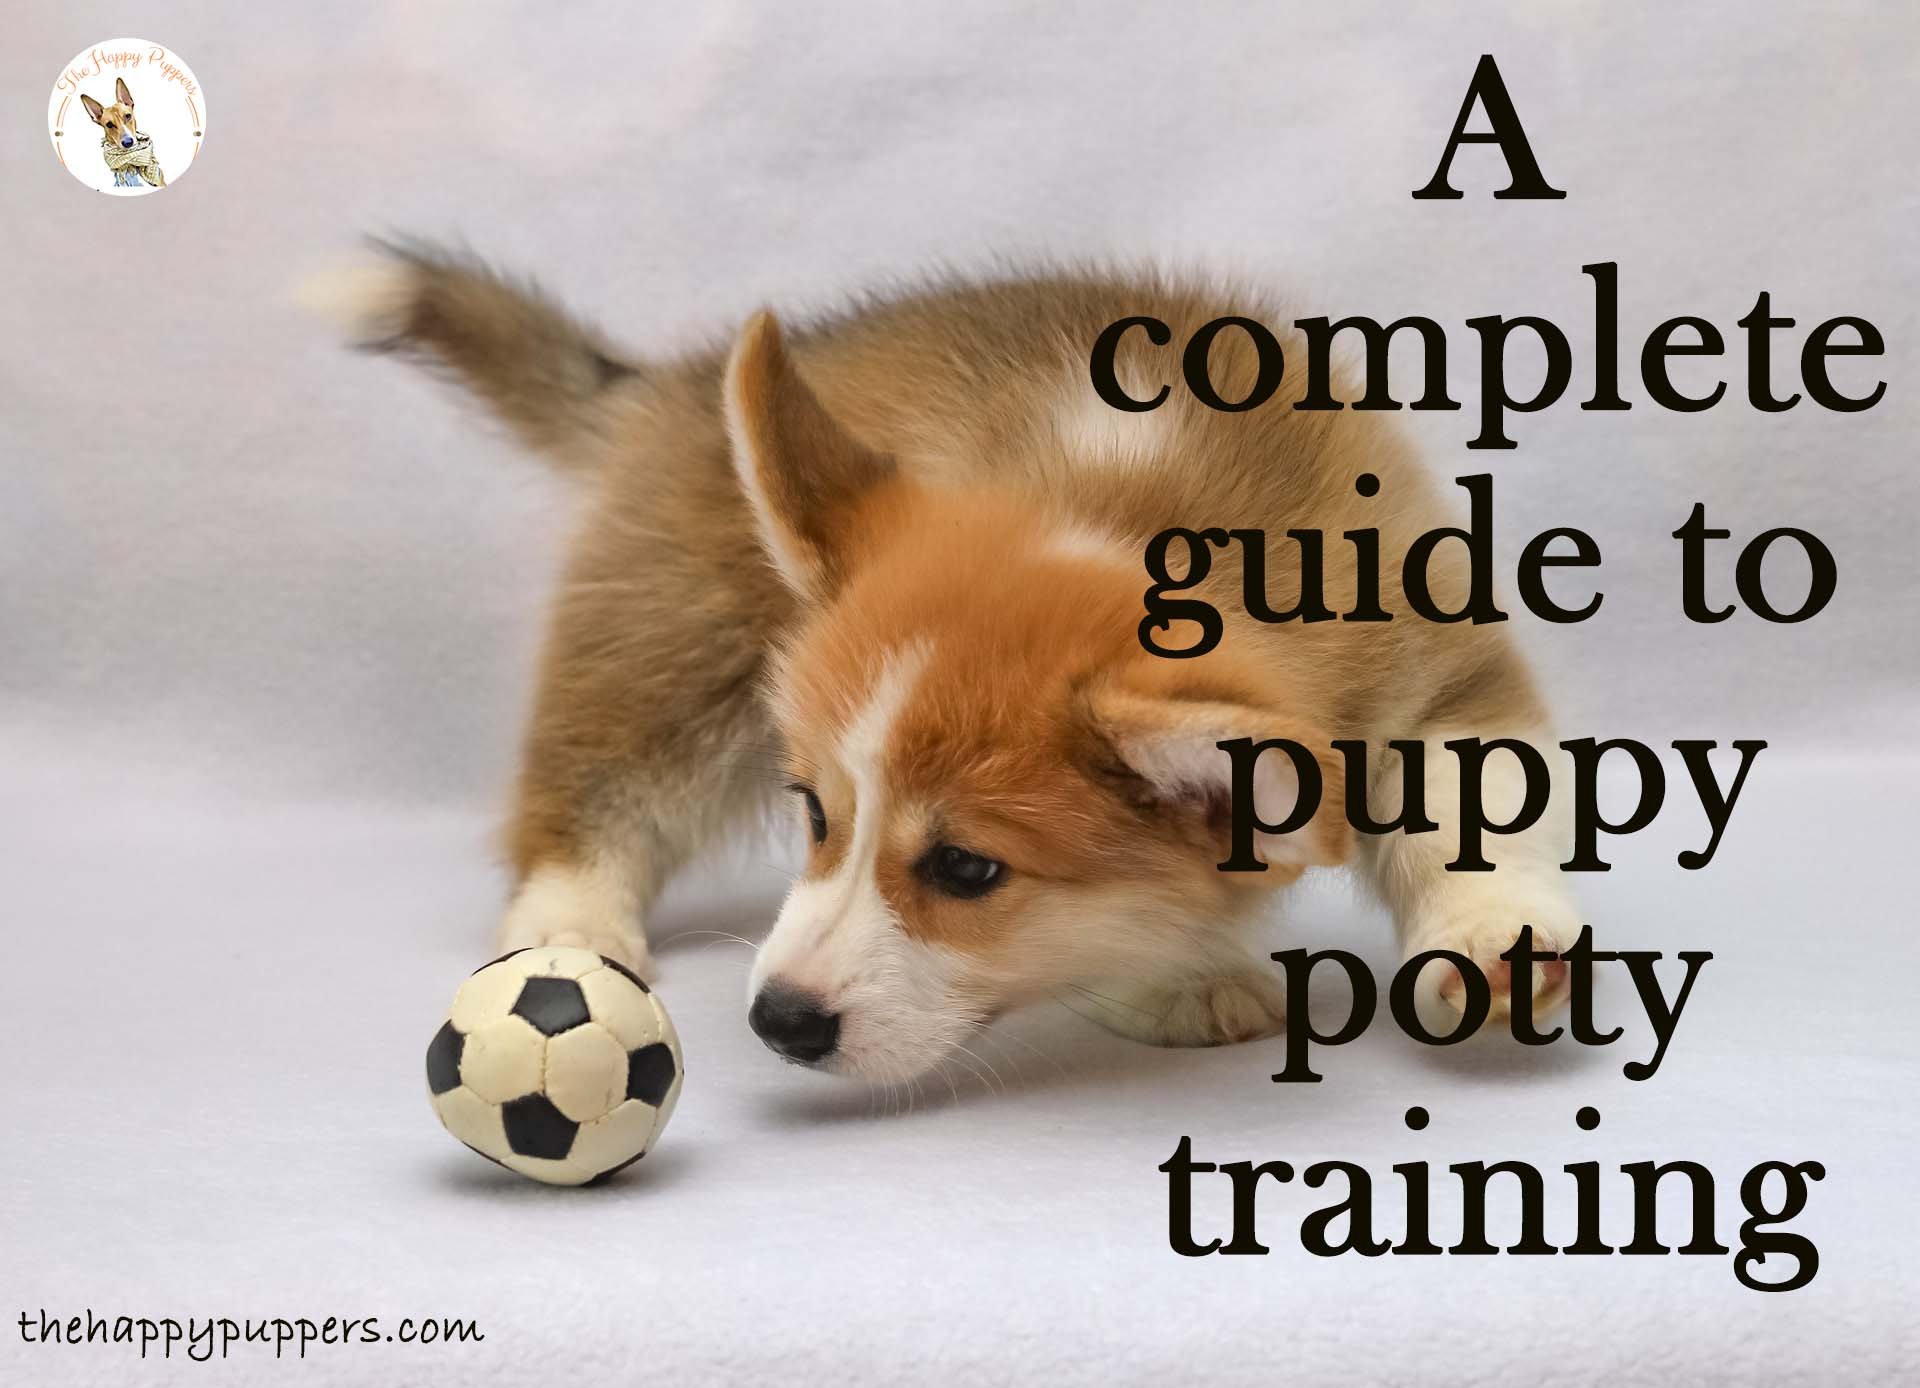 A complete guide to puppy potty training